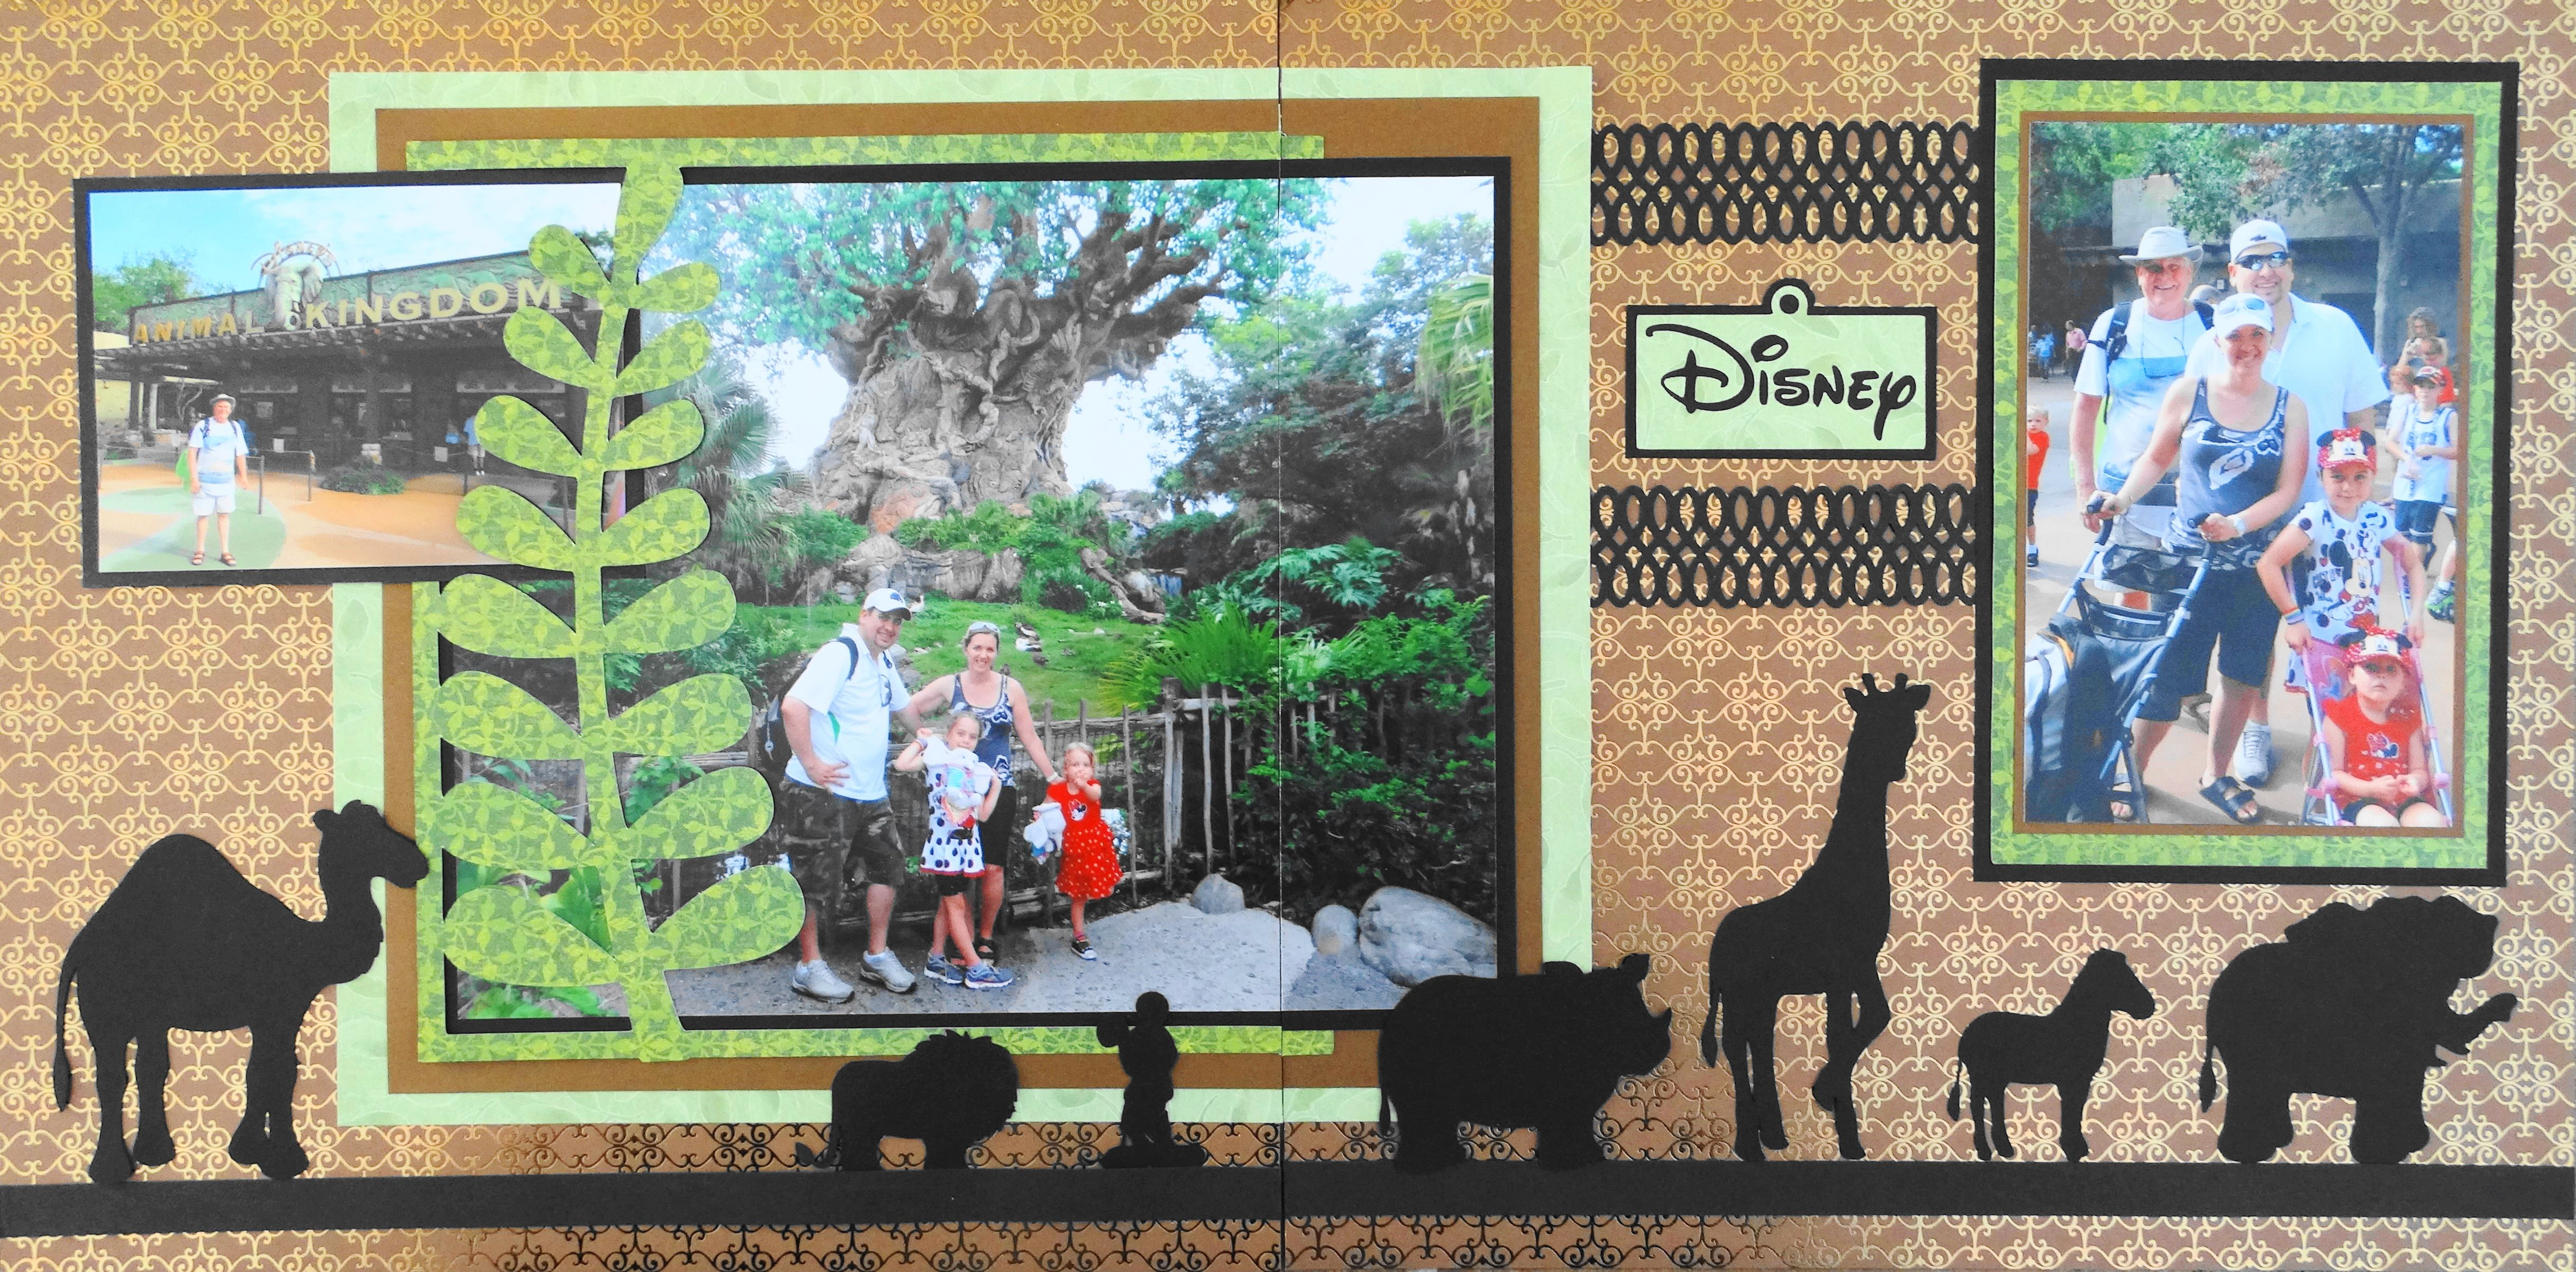 Disney Animal Kingdom Scrapbook Layout With The Tree Of Life And Animal Silhouettes Can You Disney Scrapbooking Layouts Animal Kingdom Disney Disney Scrapbook